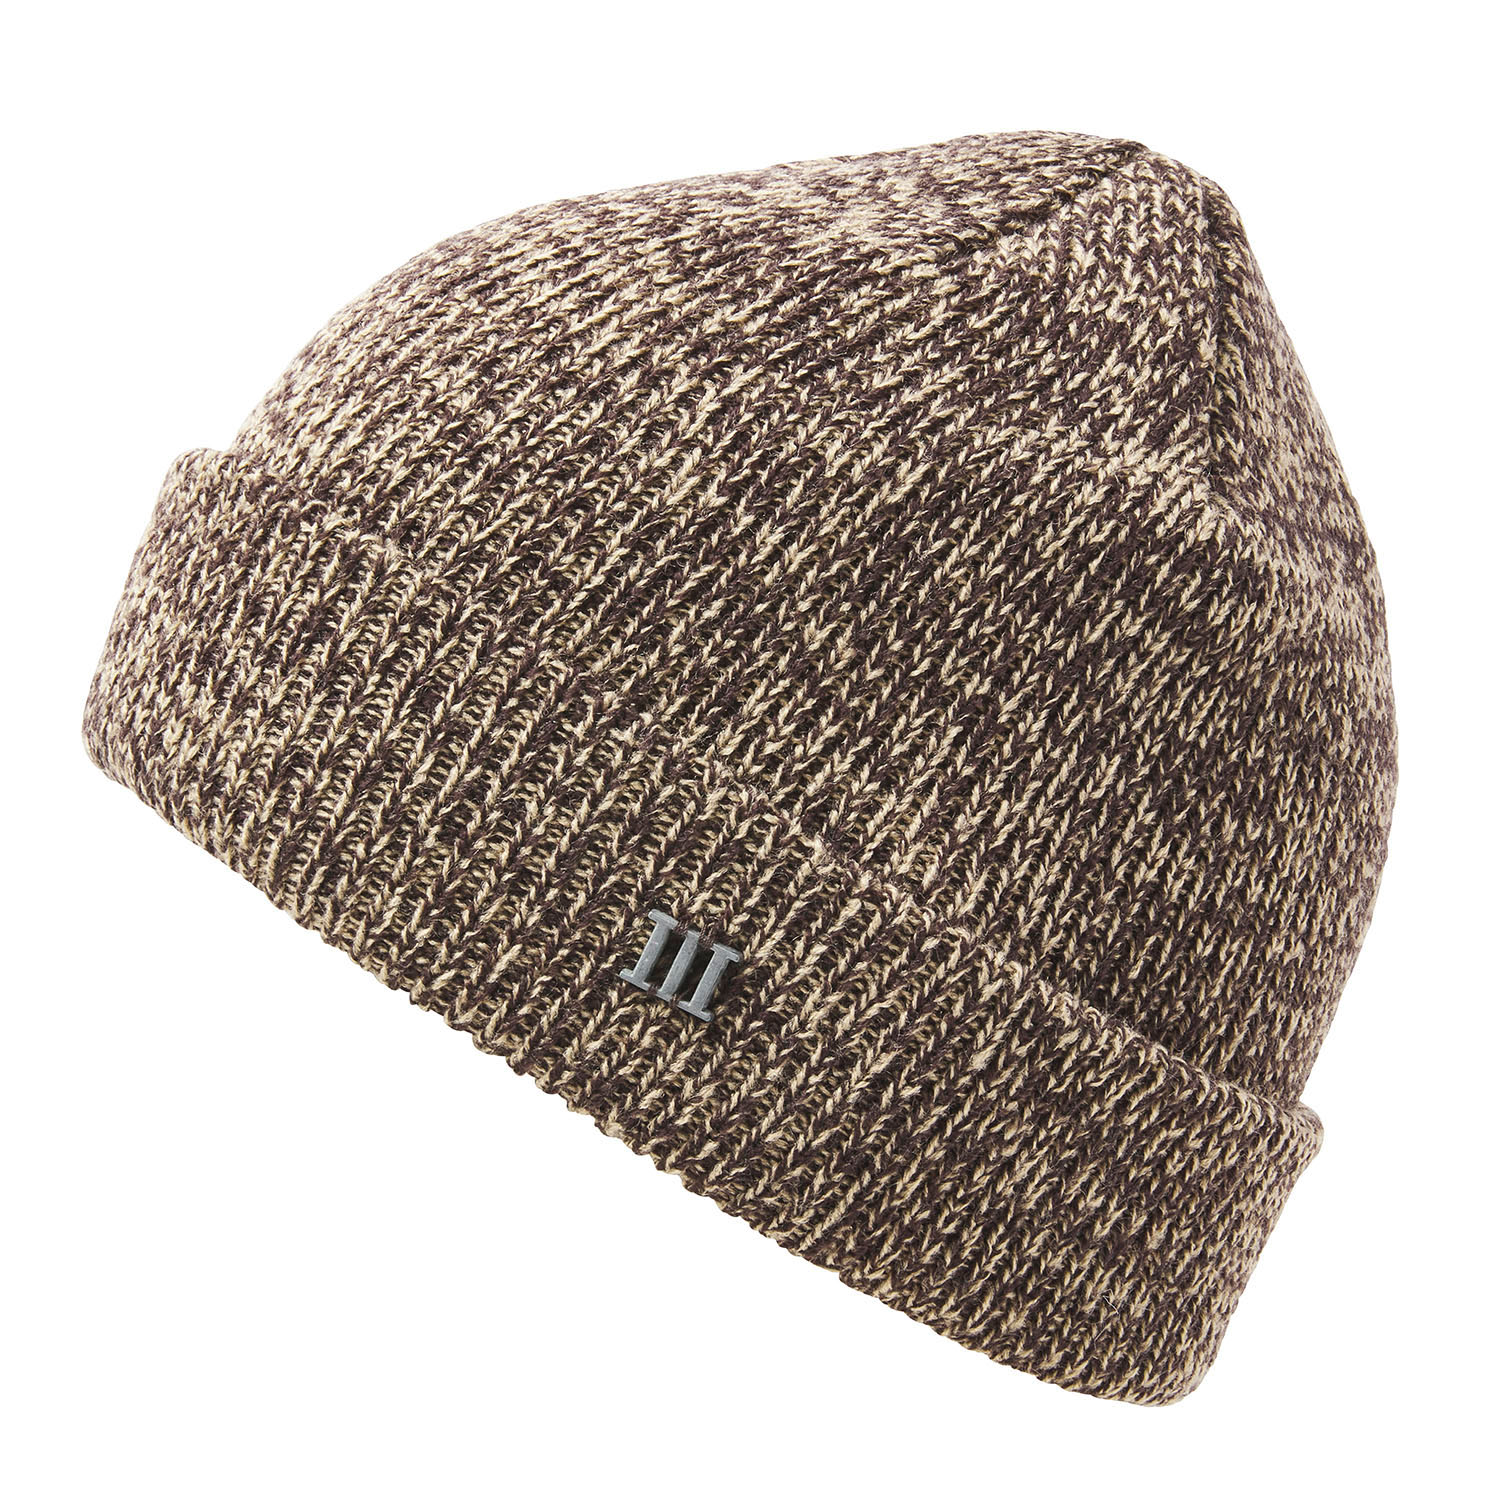 EARC | Fine knit beanie with cuff and metallic 3 in beige